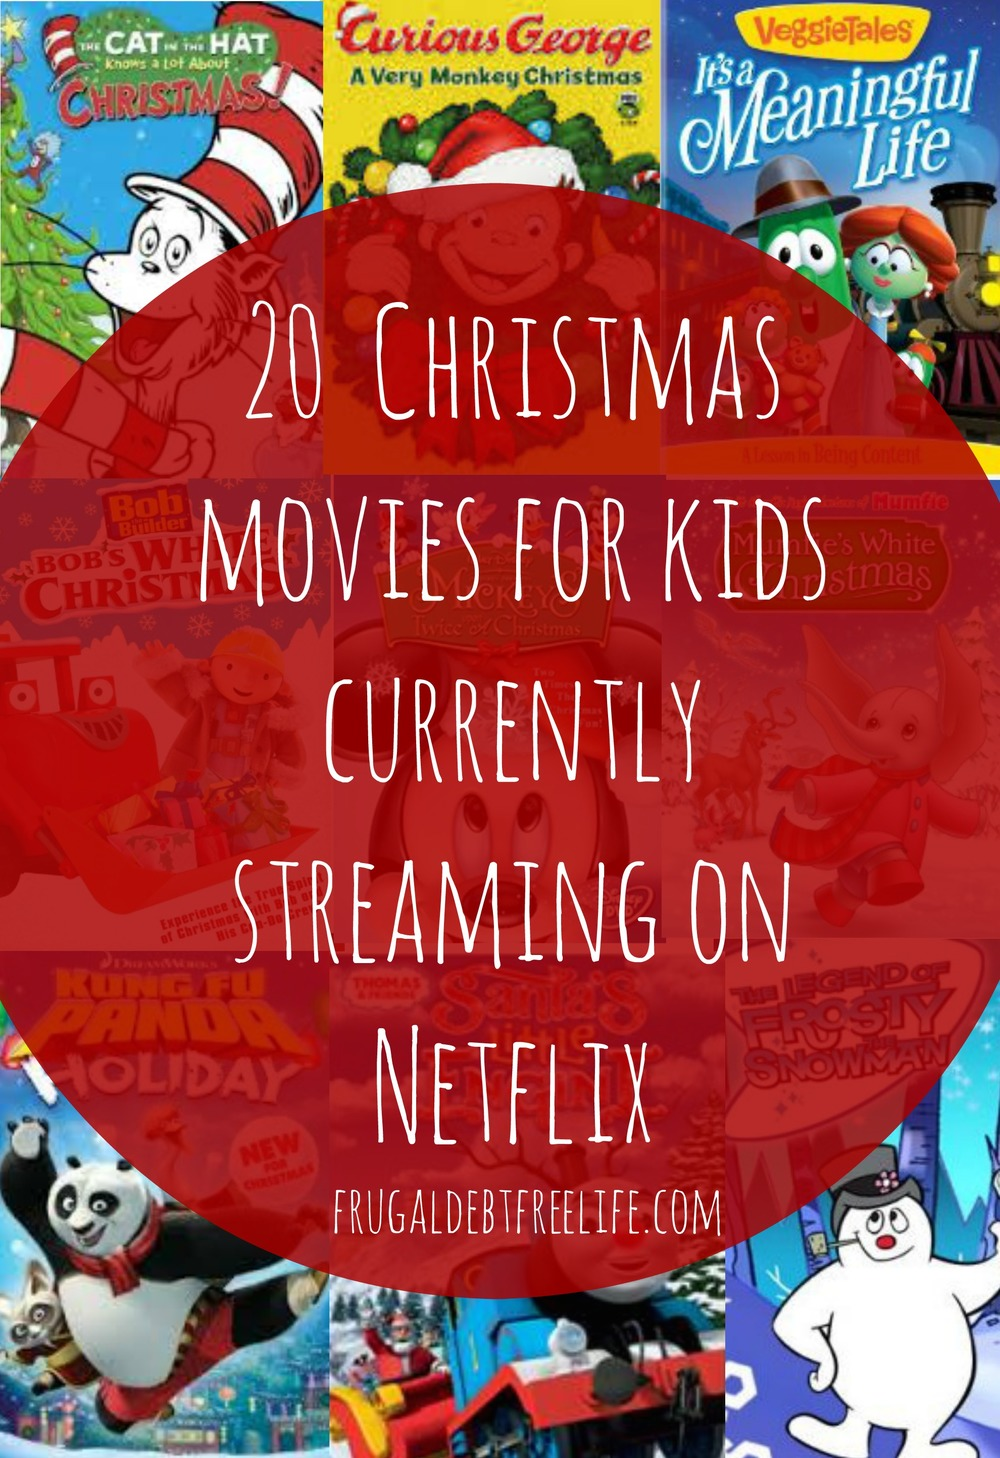 Christmas movies for small Children streaming on Netflix — Frugal ...